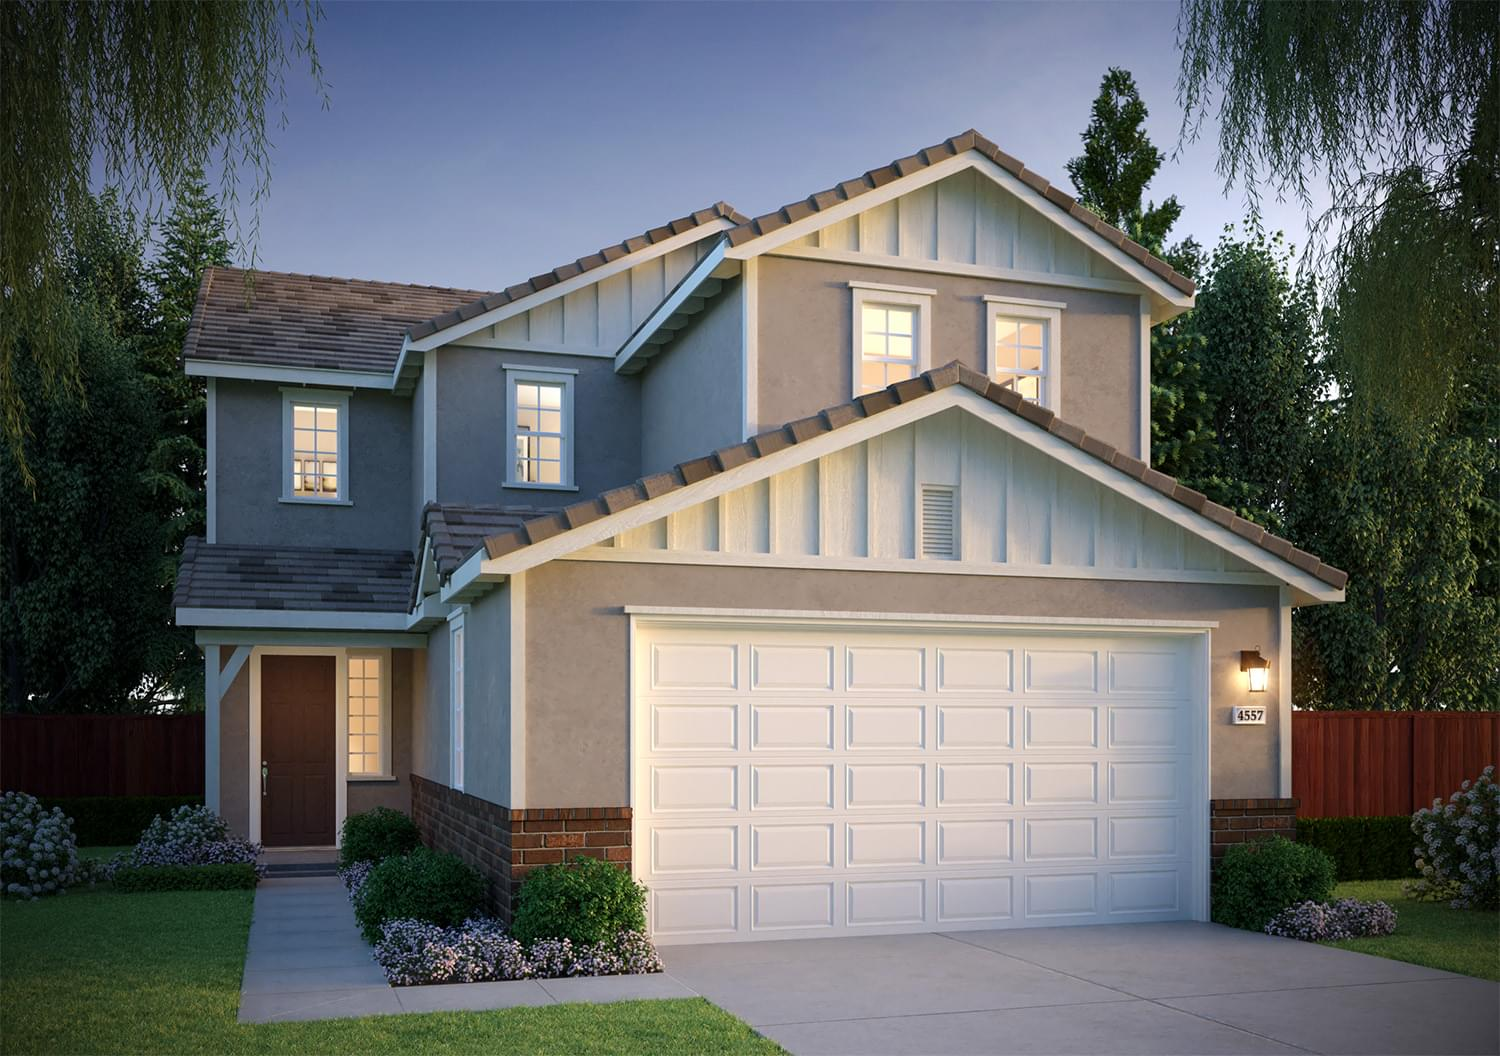 355 Tanoak Street in , CA by DeNova Homes